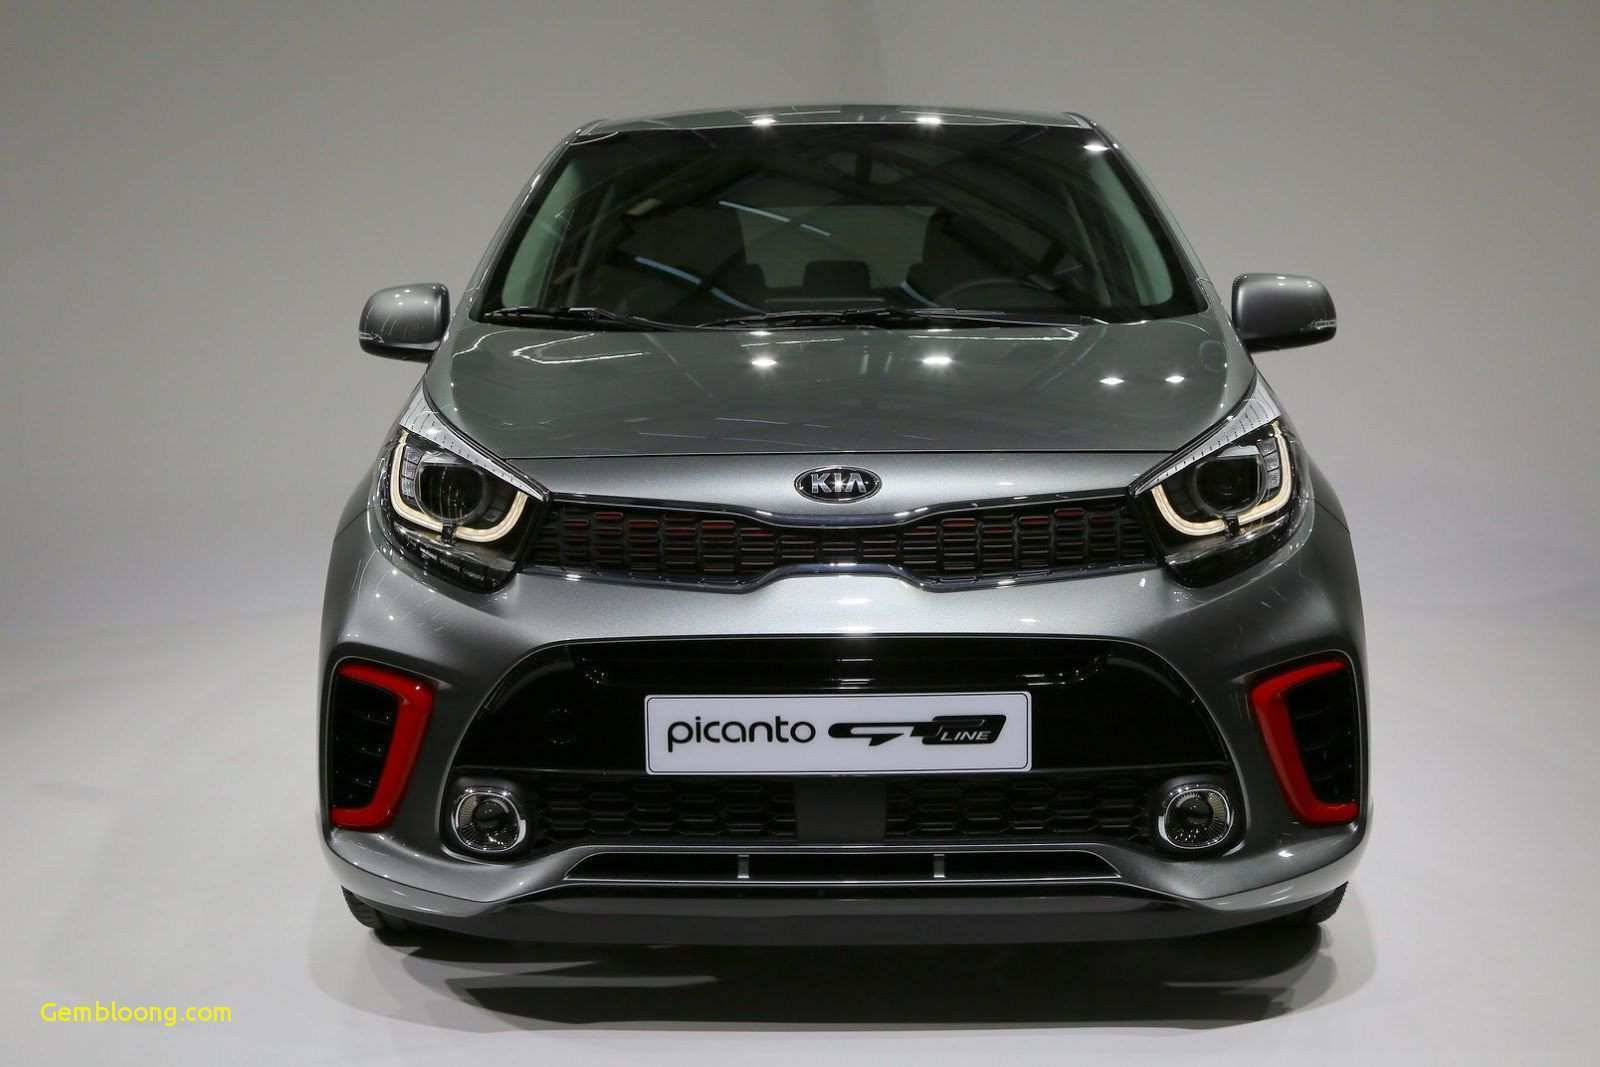 67 The Best 2019 Kia Picanto Egypt Style